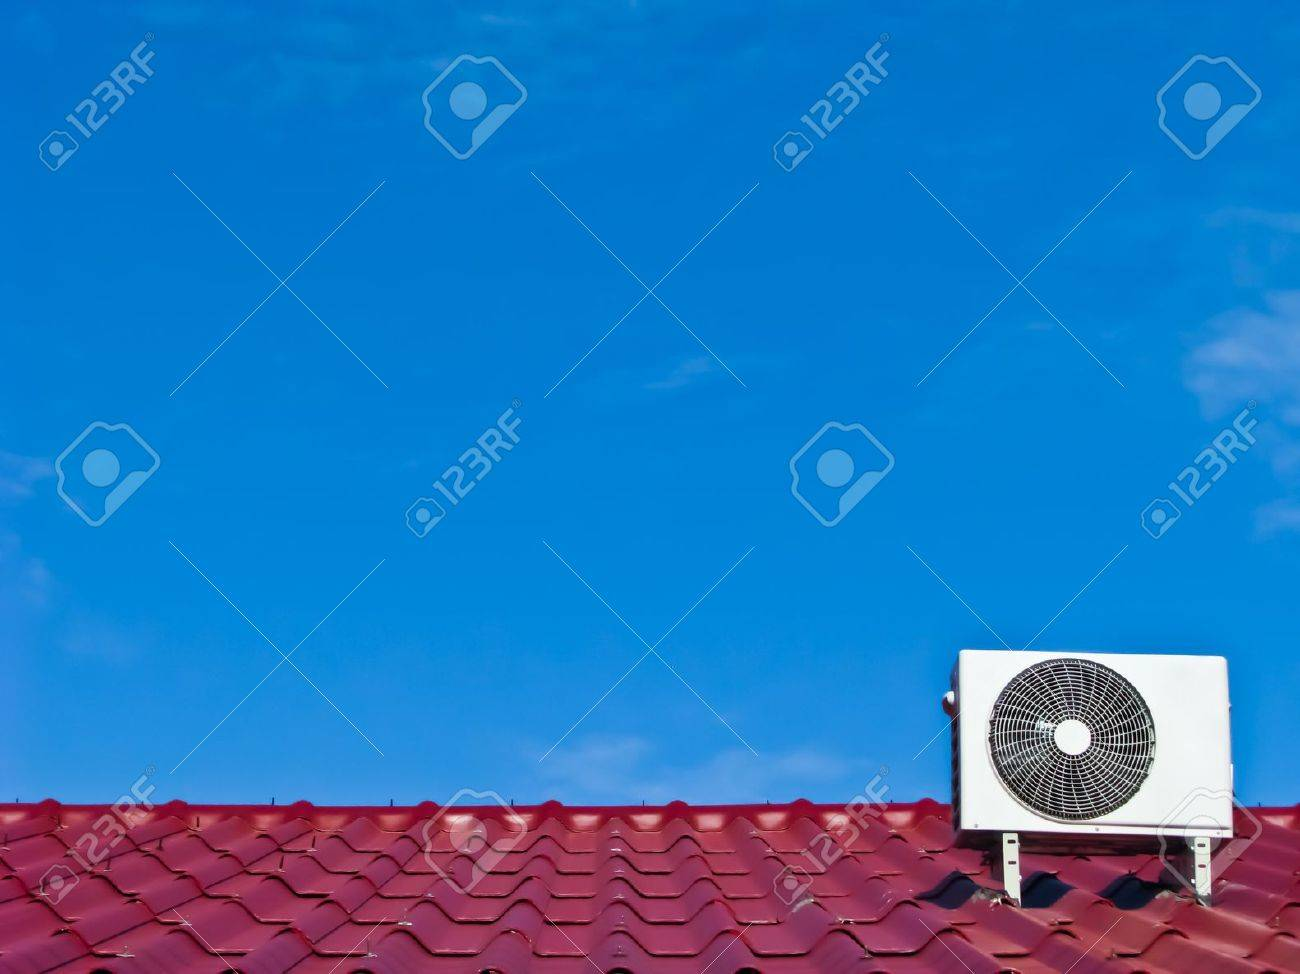 air conditioner 's compressor on the red roof Stock Photo - 10018787